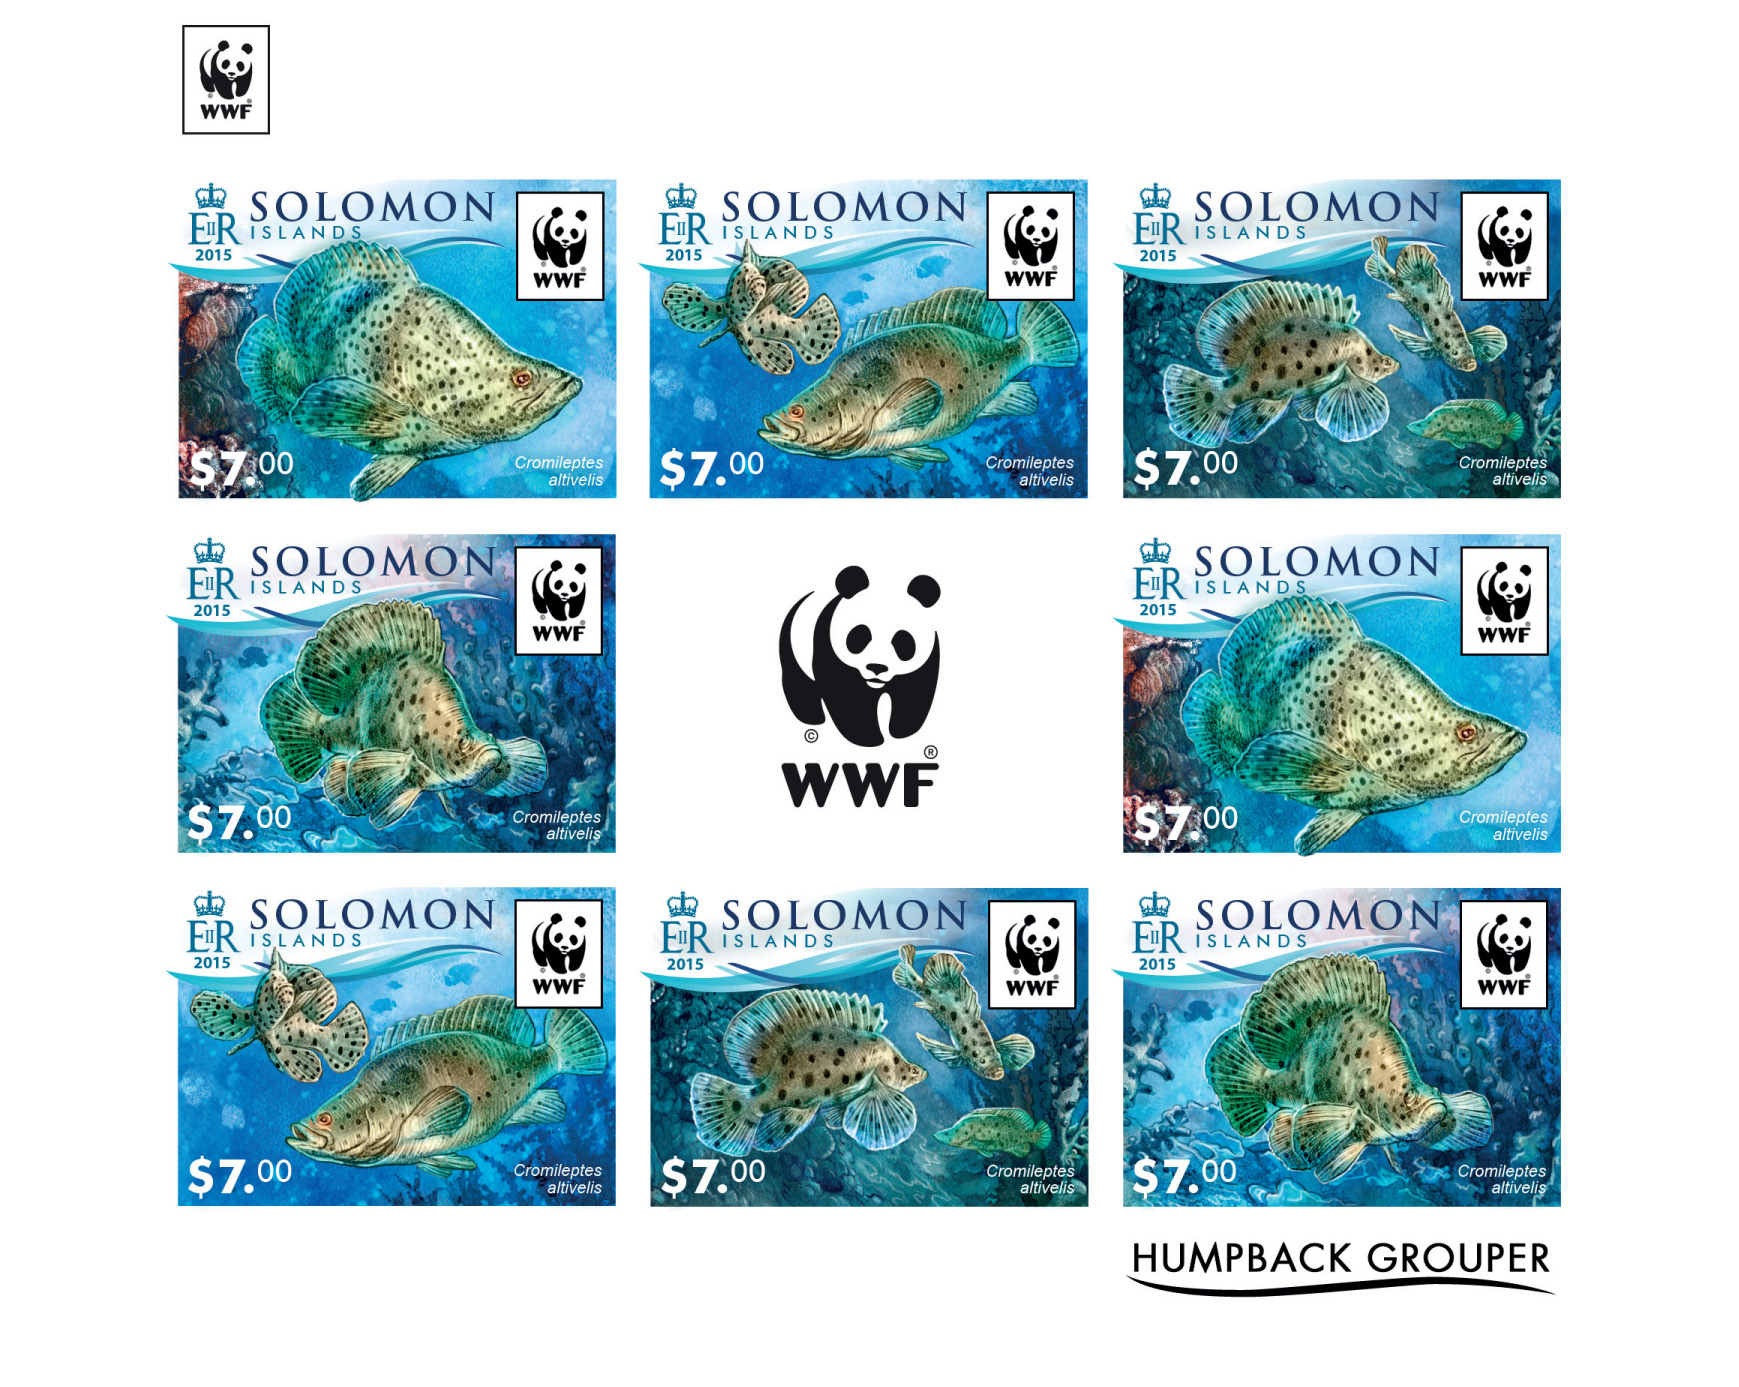 WWF – Fish (imperf. 2 sets) - Issue of Solomon islands postage stamps